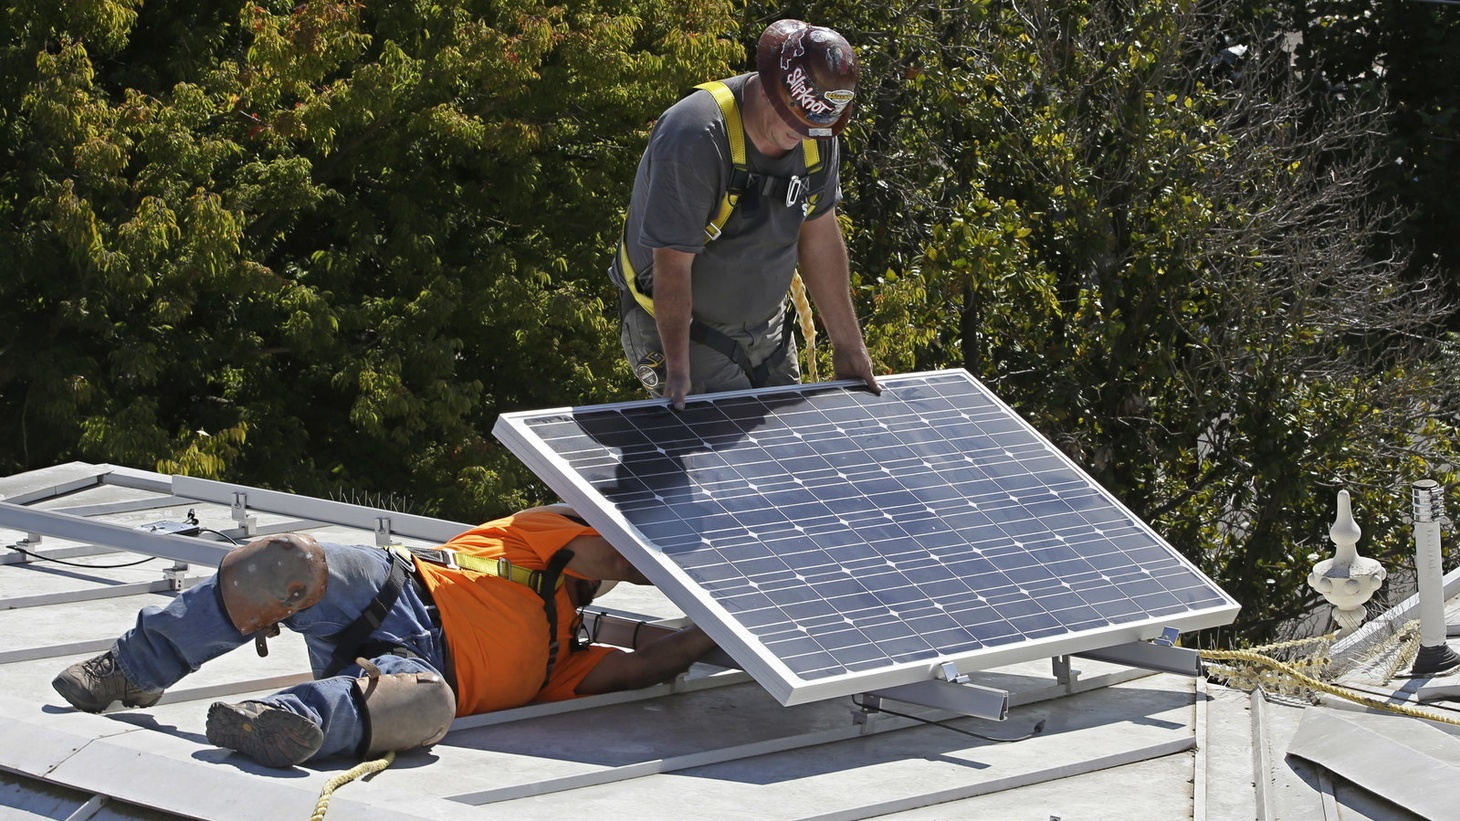 California predicts mandatory solar panel installations will add nearly $10,000 to the upfront cost of a home — money that will be recouped through energy savings.